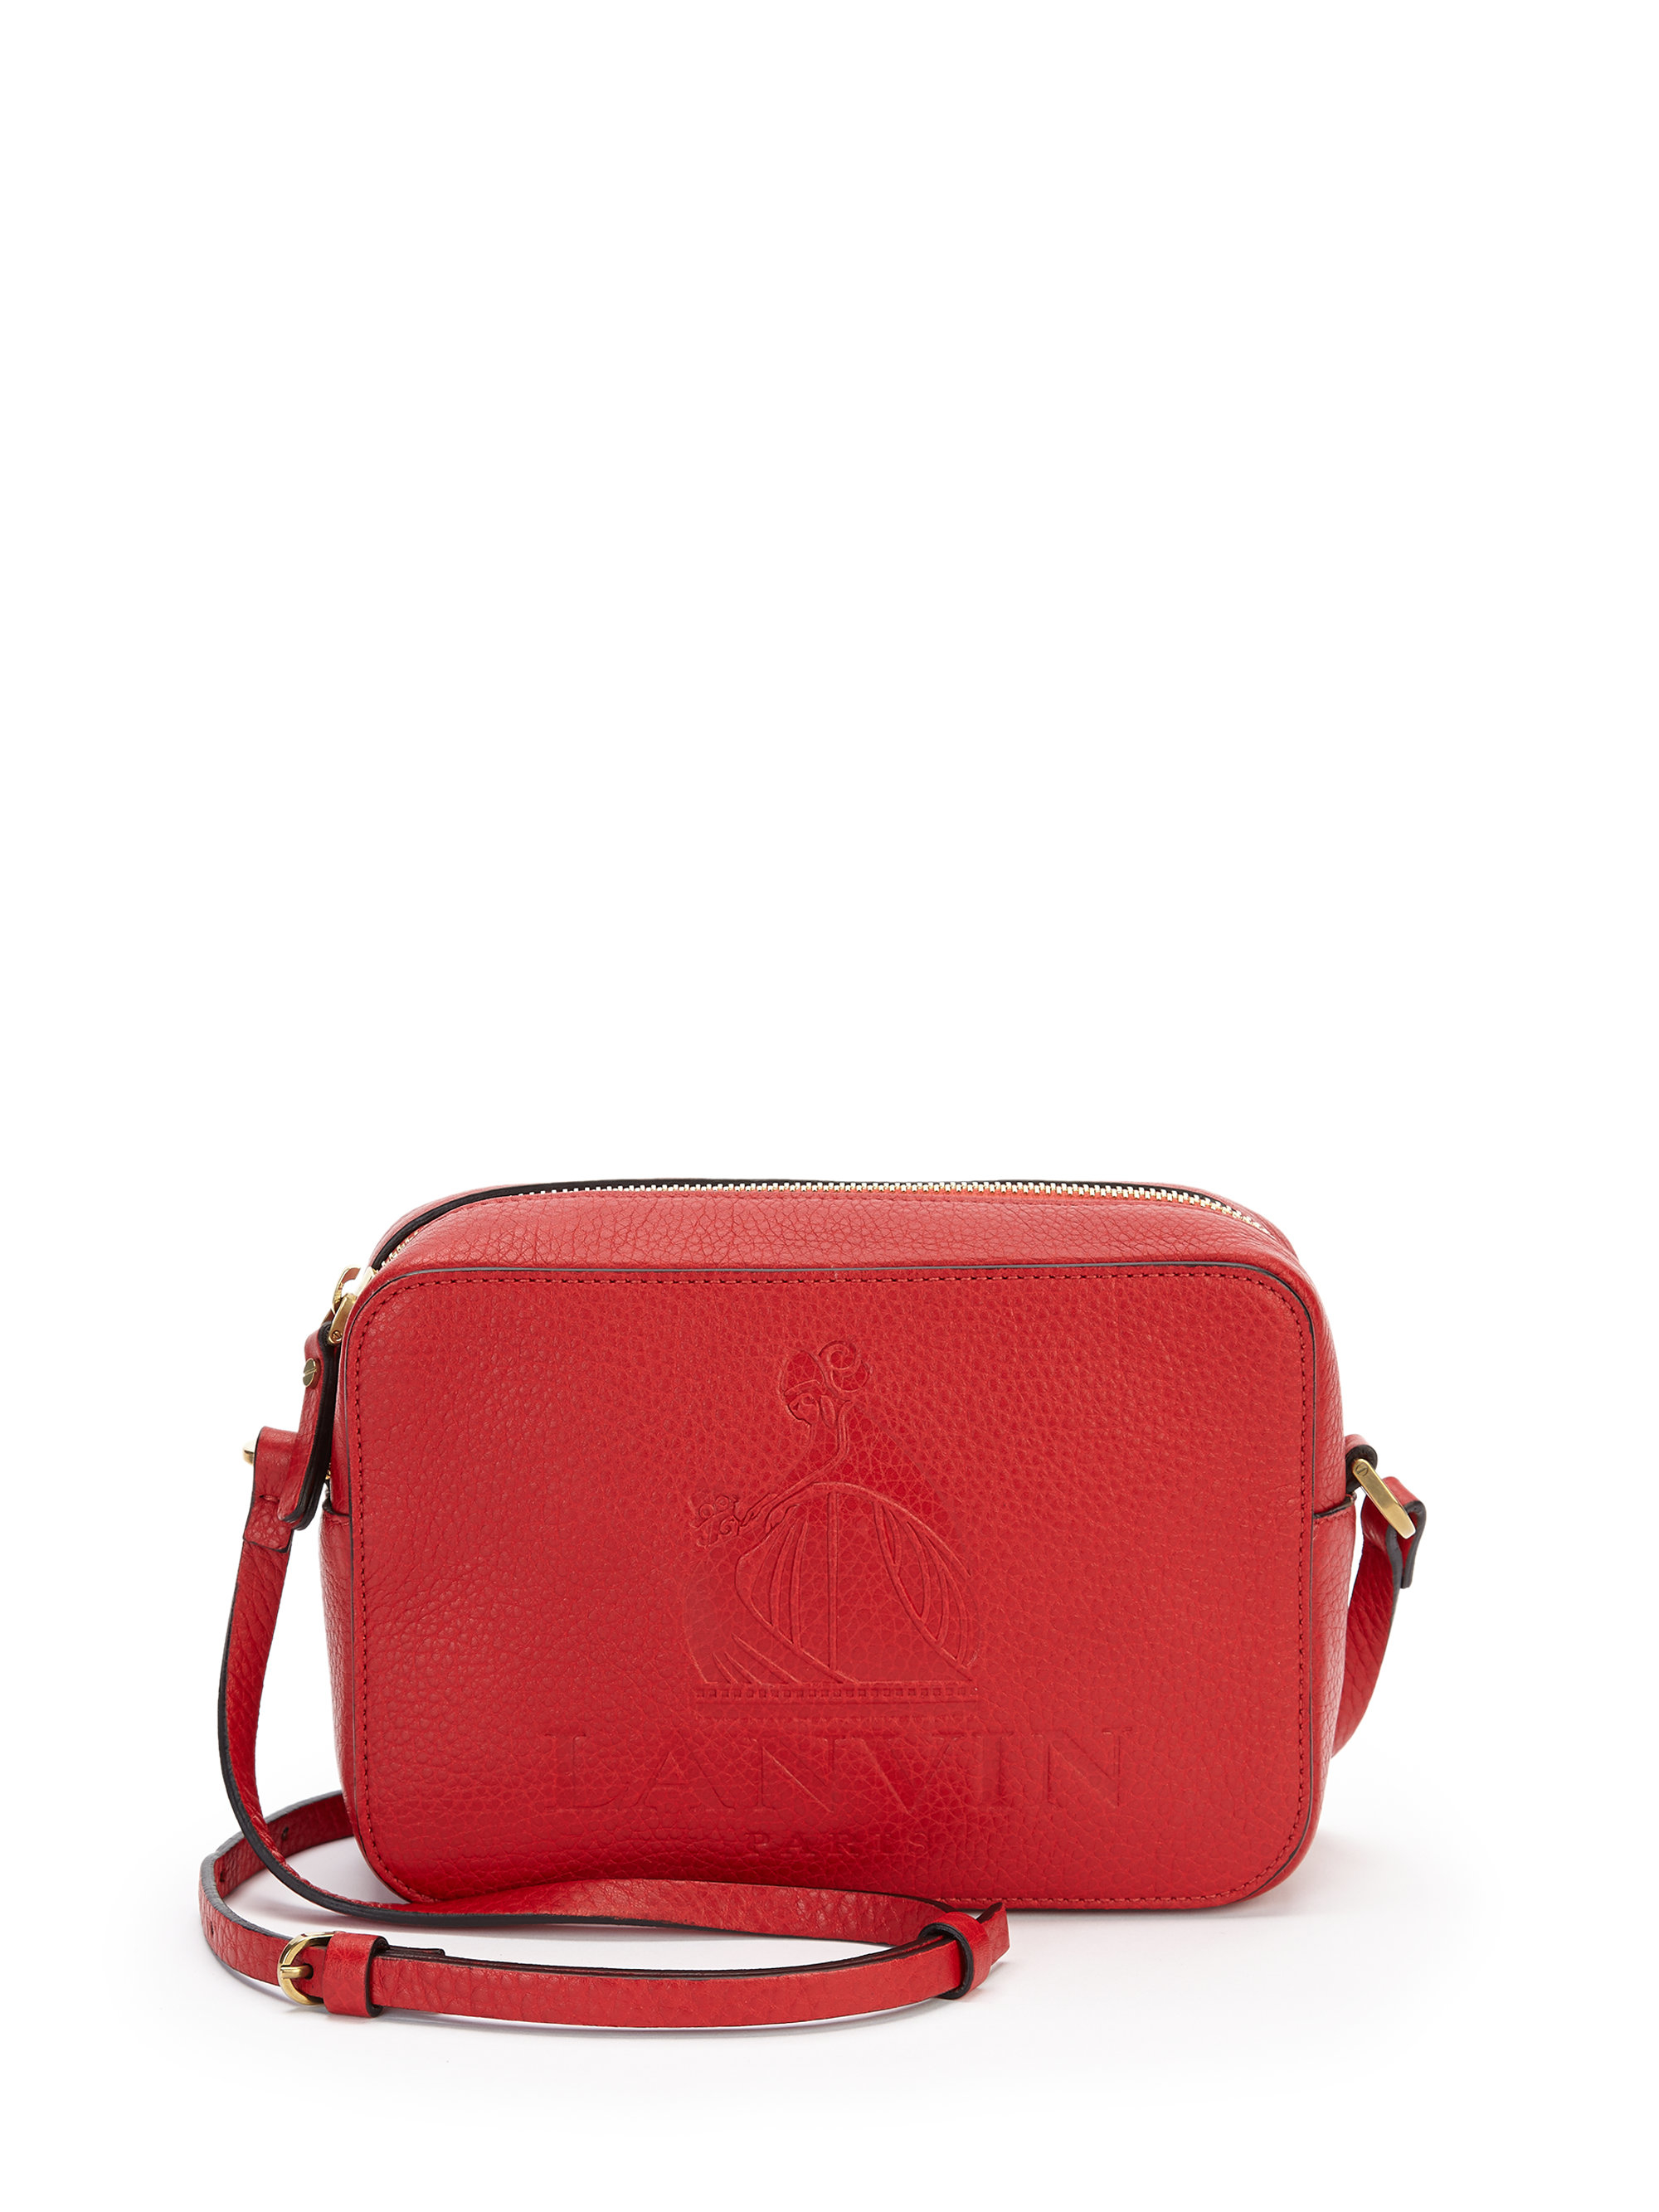 Lanvin Mini So Leather Crossbody Bag in Red | Lyst